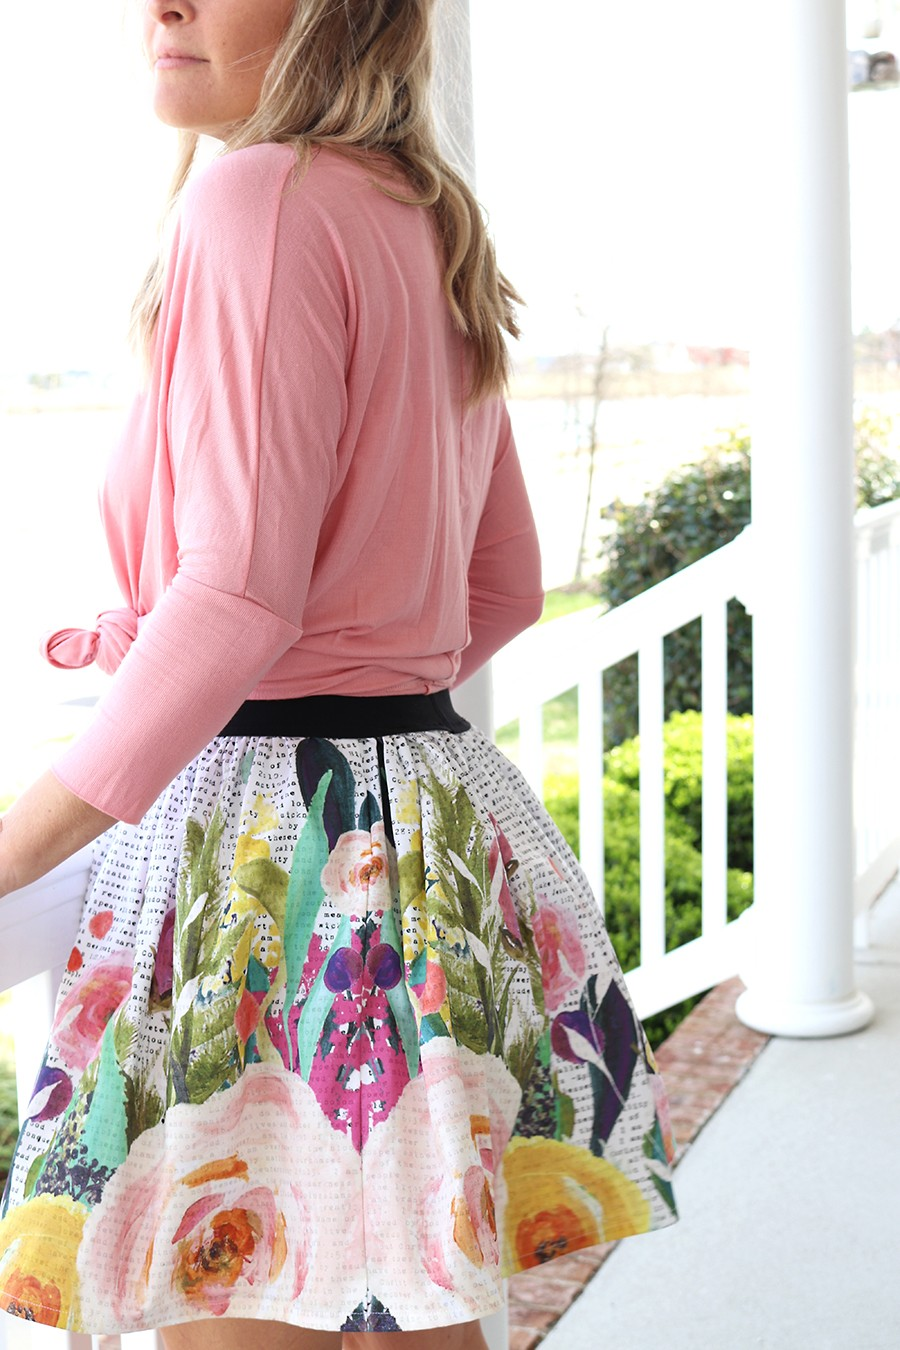 I Am Floral bible skirt sewing kit